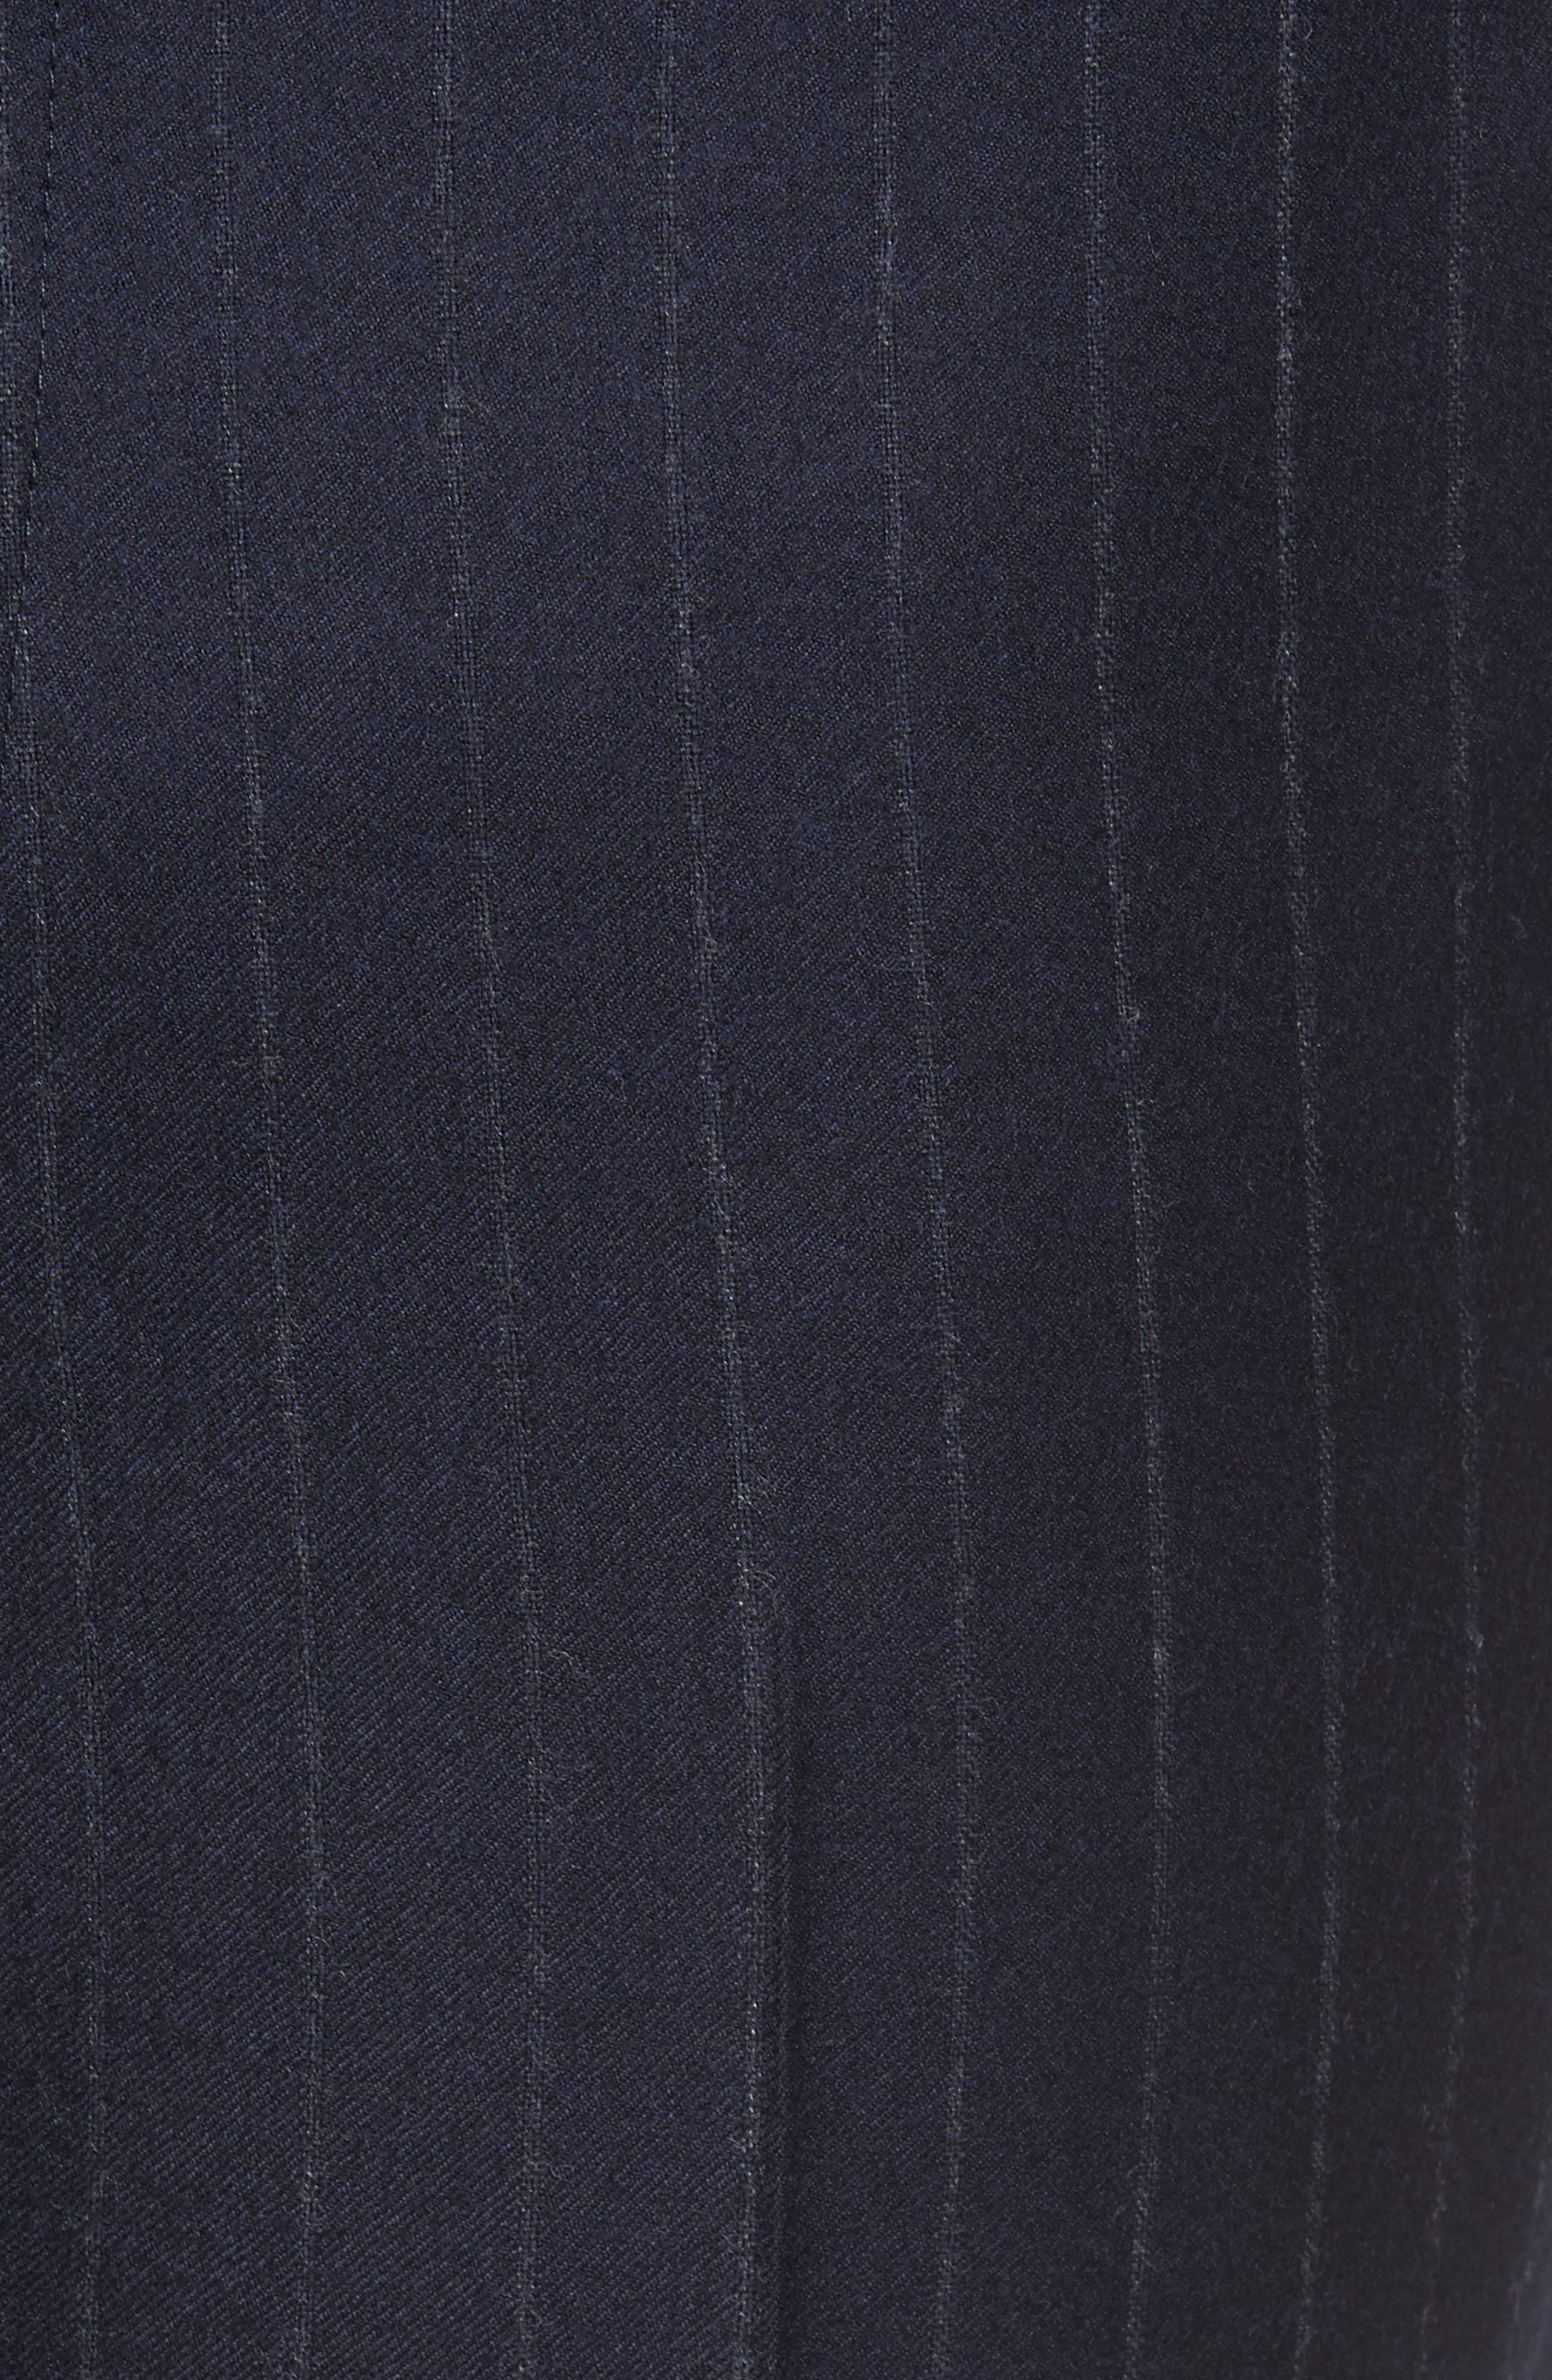 Flat Front Chalk Stripe Wool Trousers,                             Alternate thumbnail 5, color,                             Navy